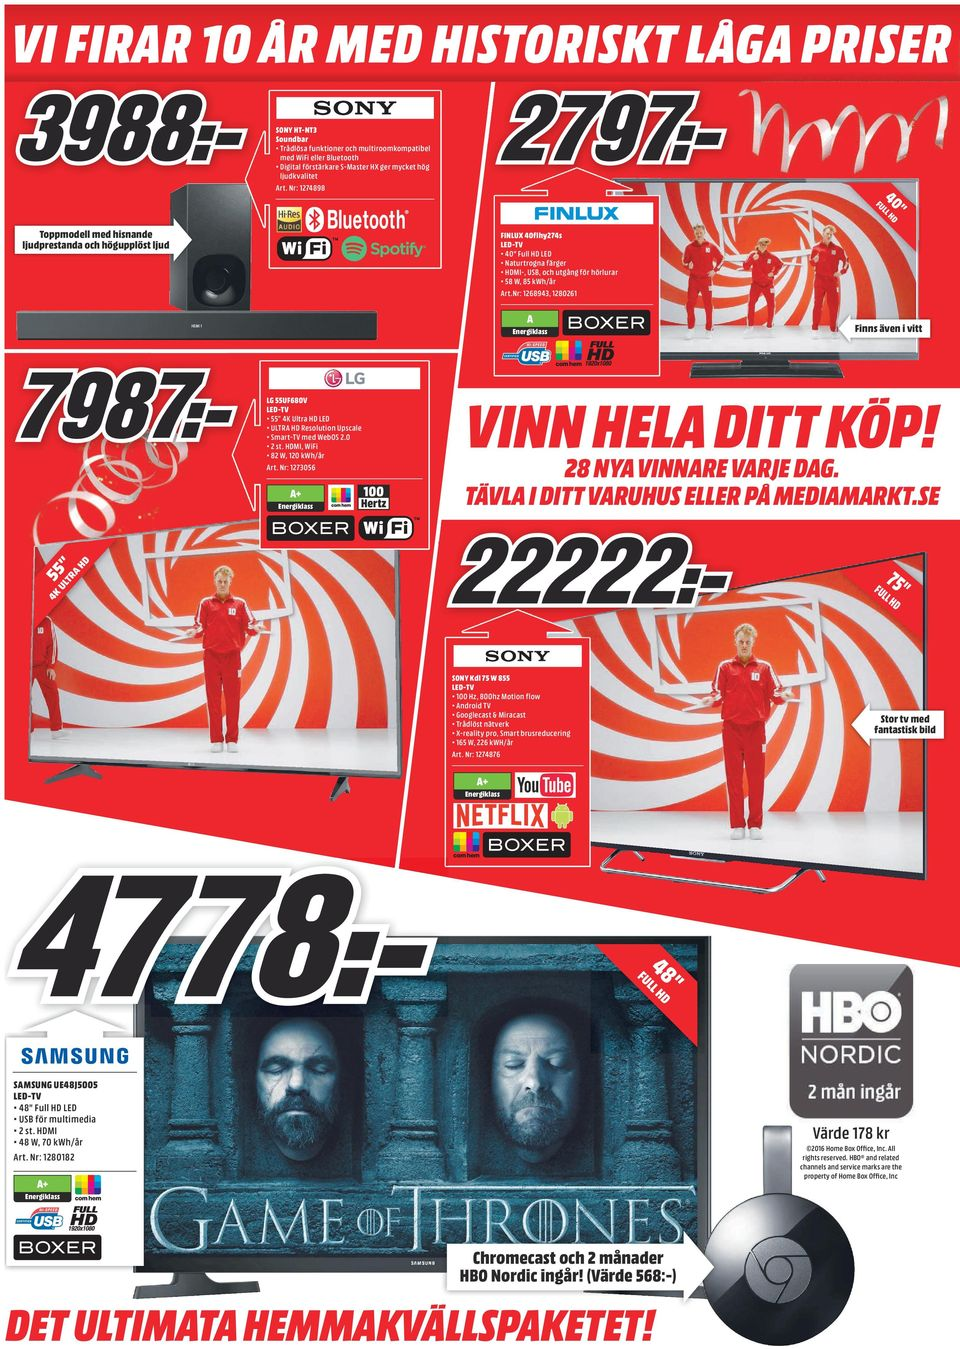 Nr: 1268943, 1280261 A Finns även i vitt LG 55UF680V LED-TV 55 4K Ultra HD LED ULTRA HD Resolution Upscale Smart-TV med WebOS 2.0 2 st. HDMI, WiFi 82 W, 120 kwh/år Art.